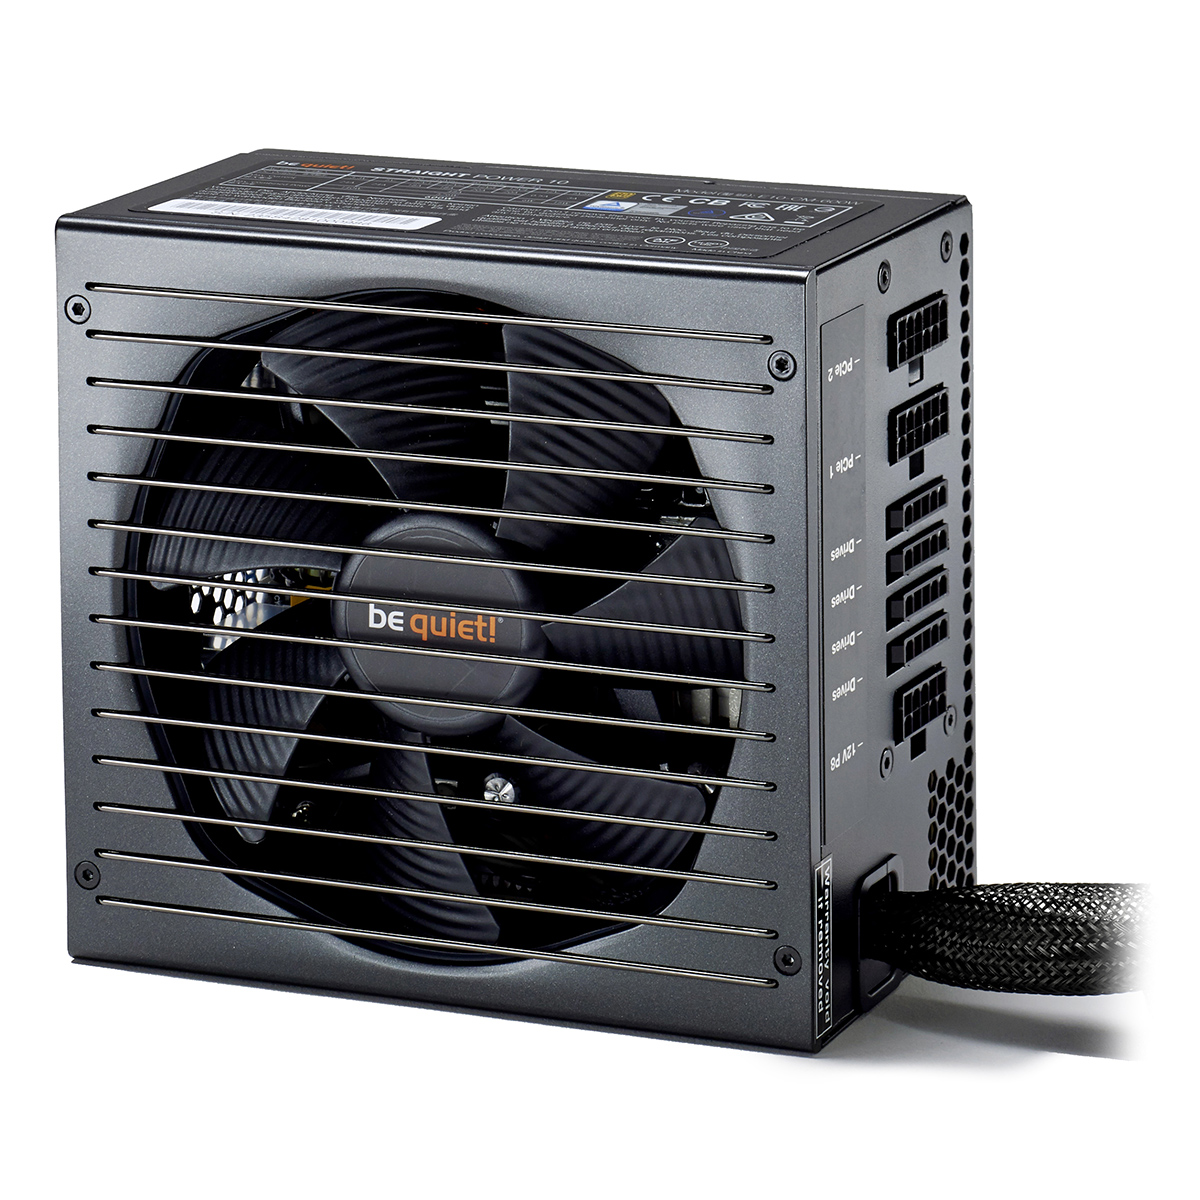 Alimentation PC be quiet! Straight Power 10 600W CM 80PLUS Gold Alimentation modulaire 600W ATX 12V 2.4/ EPS 12V 2.92 (Garantie 5 ans par Be Quiet !)